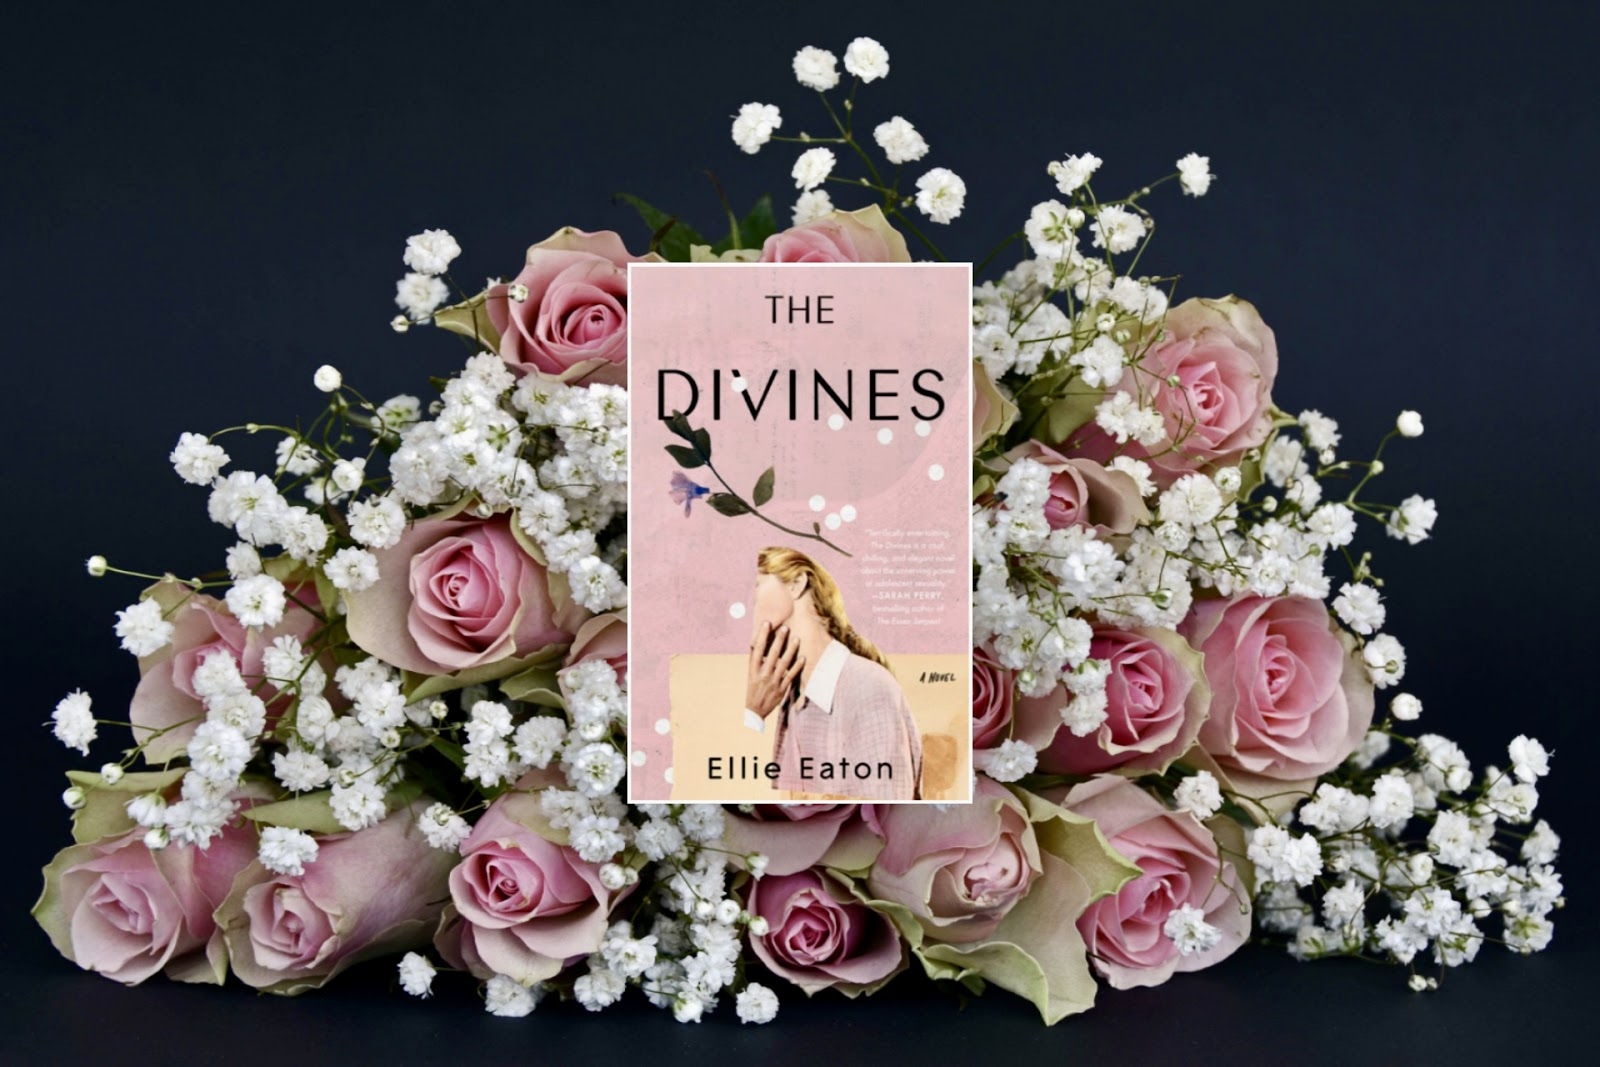 The Divines by Ellie Eaton - A Book Review